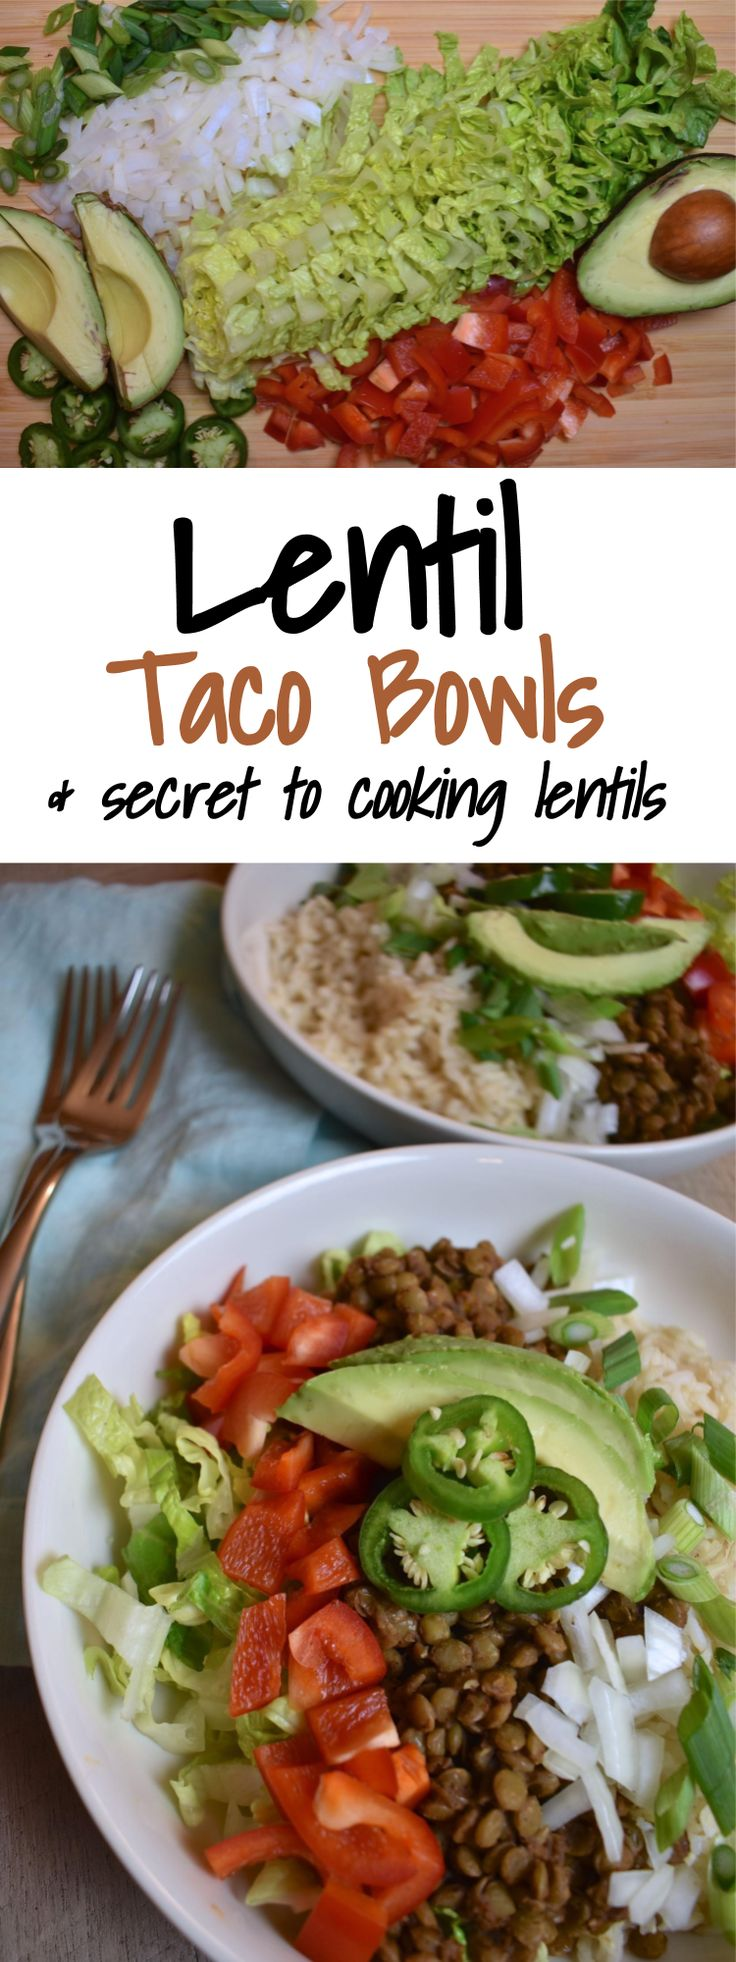 Lentil Taco Bowls | the secret to cooking lentils | how to cook lentils